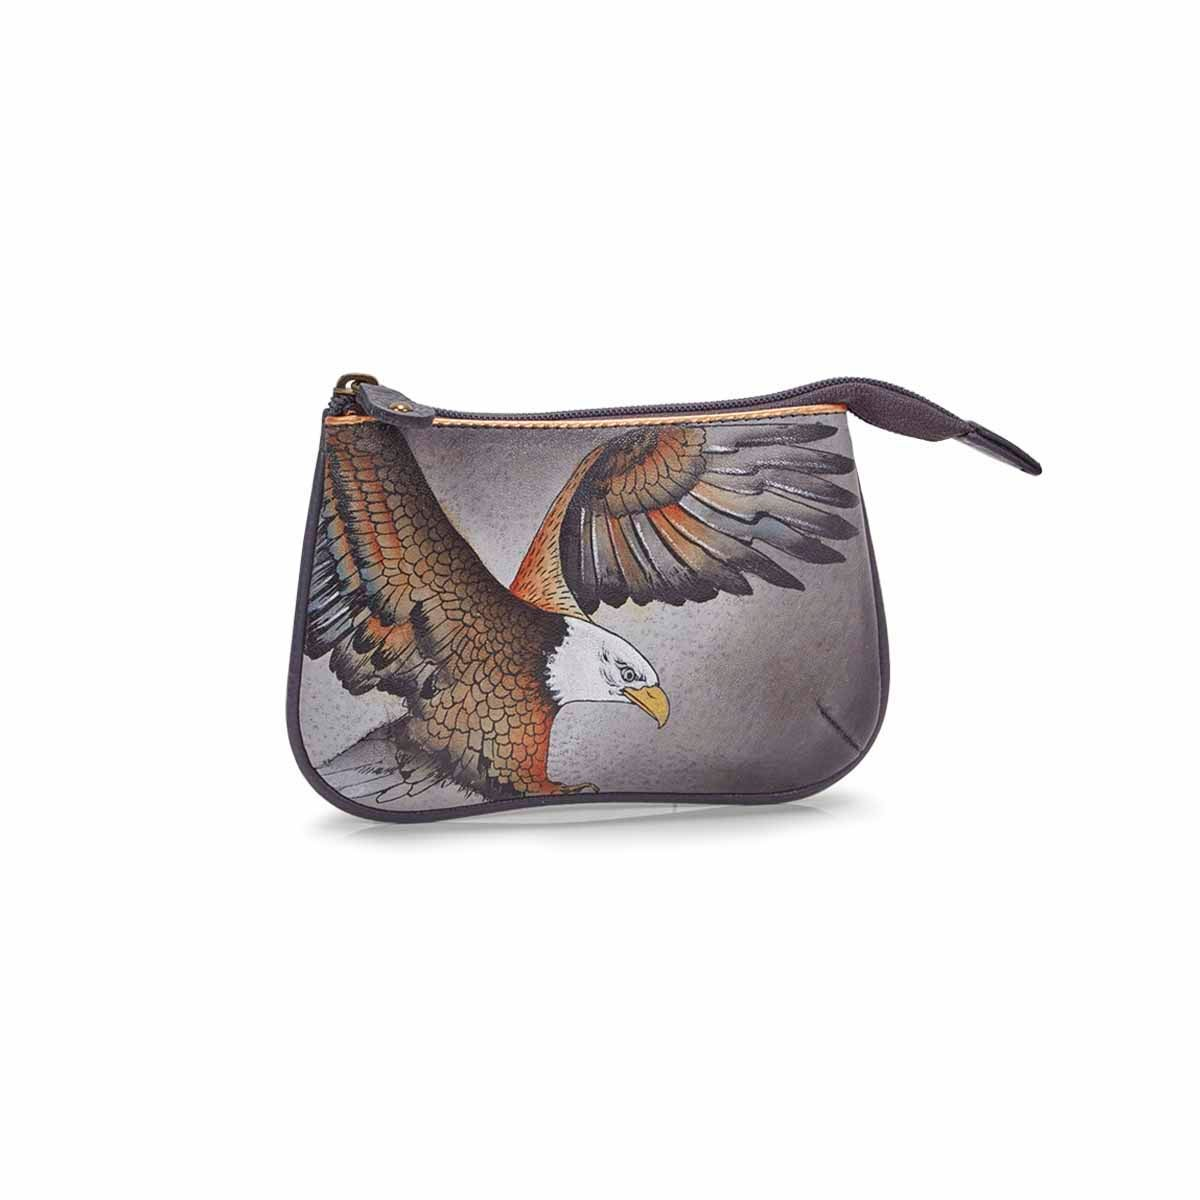 Women's AMERICAN EAGLE coin purse